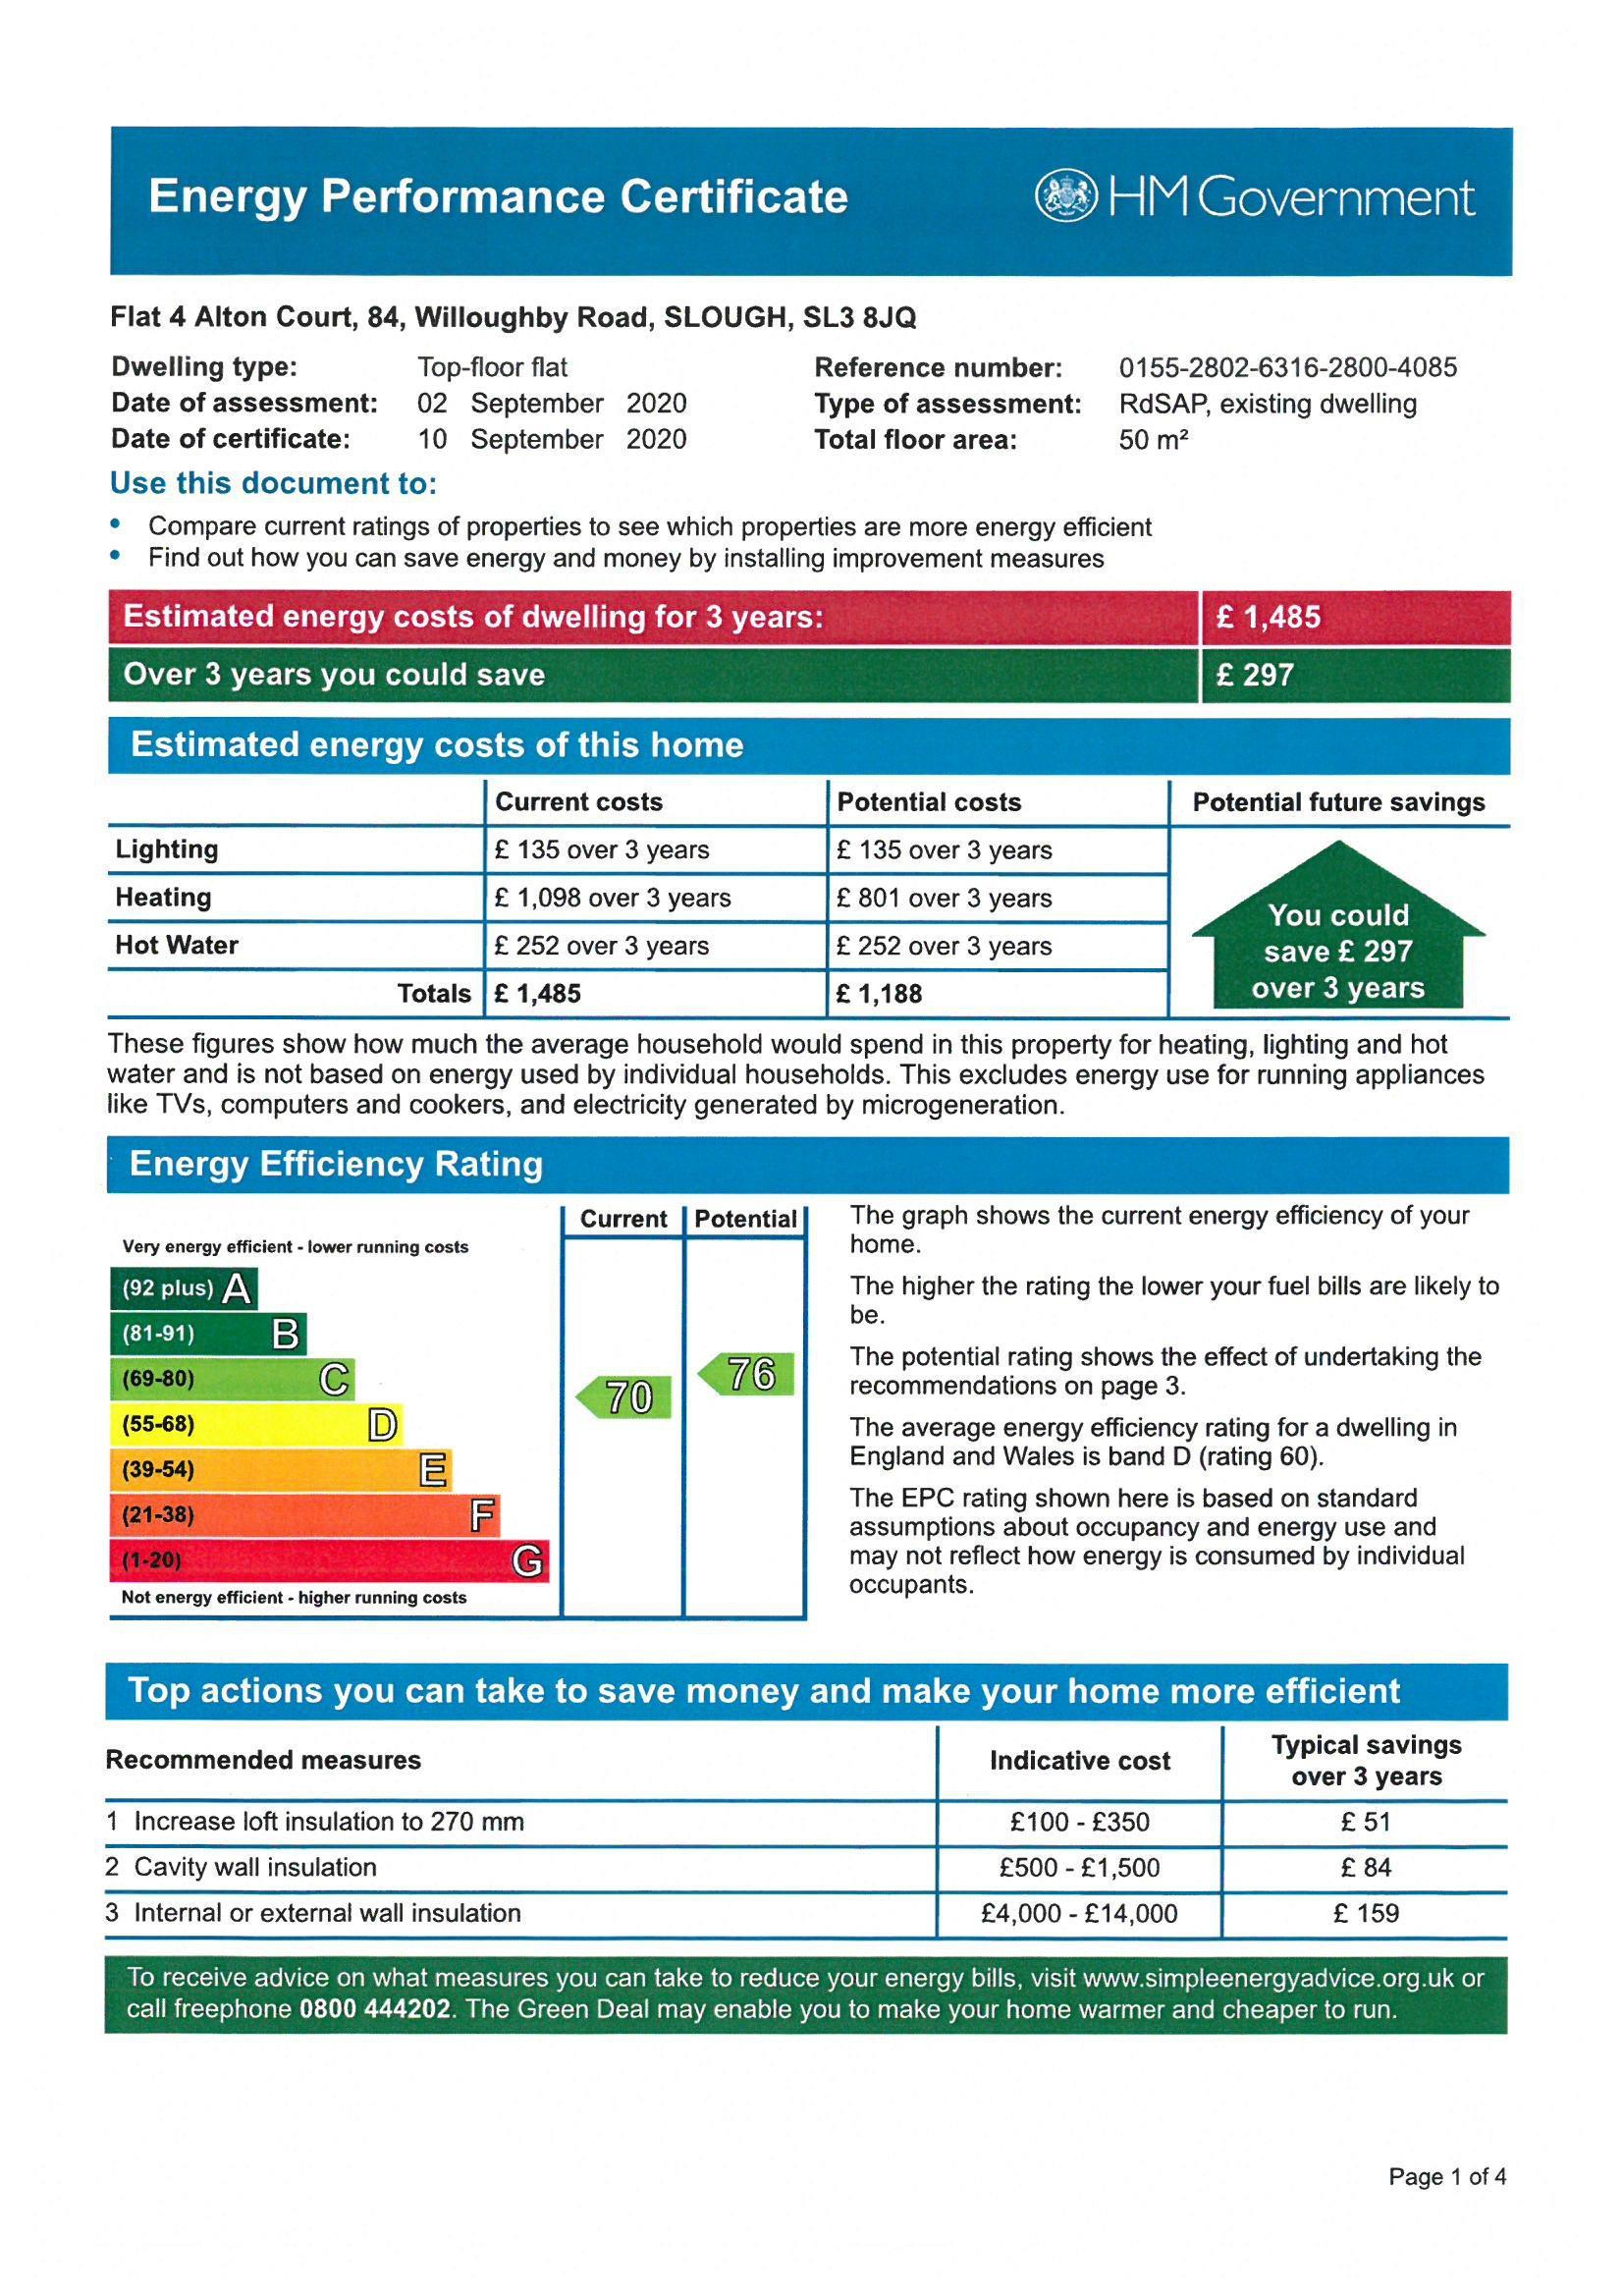 EPC Graph for Flat 4 Alton Court, 84 Willoughby Road, Langley, Berkshire, SL3 8JQ